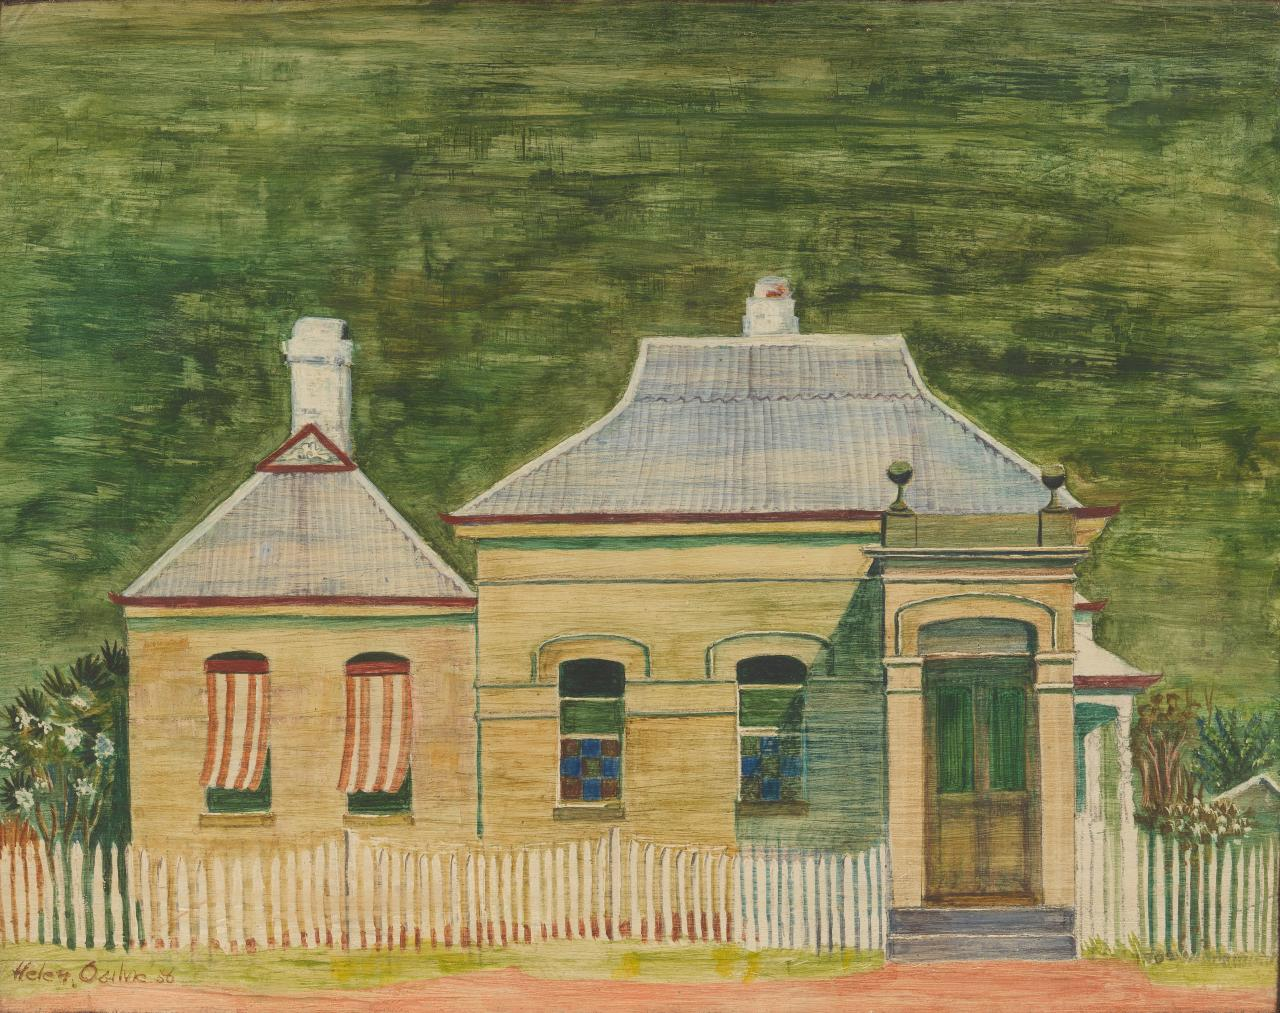 Bank of New South Wales, Tallangatta